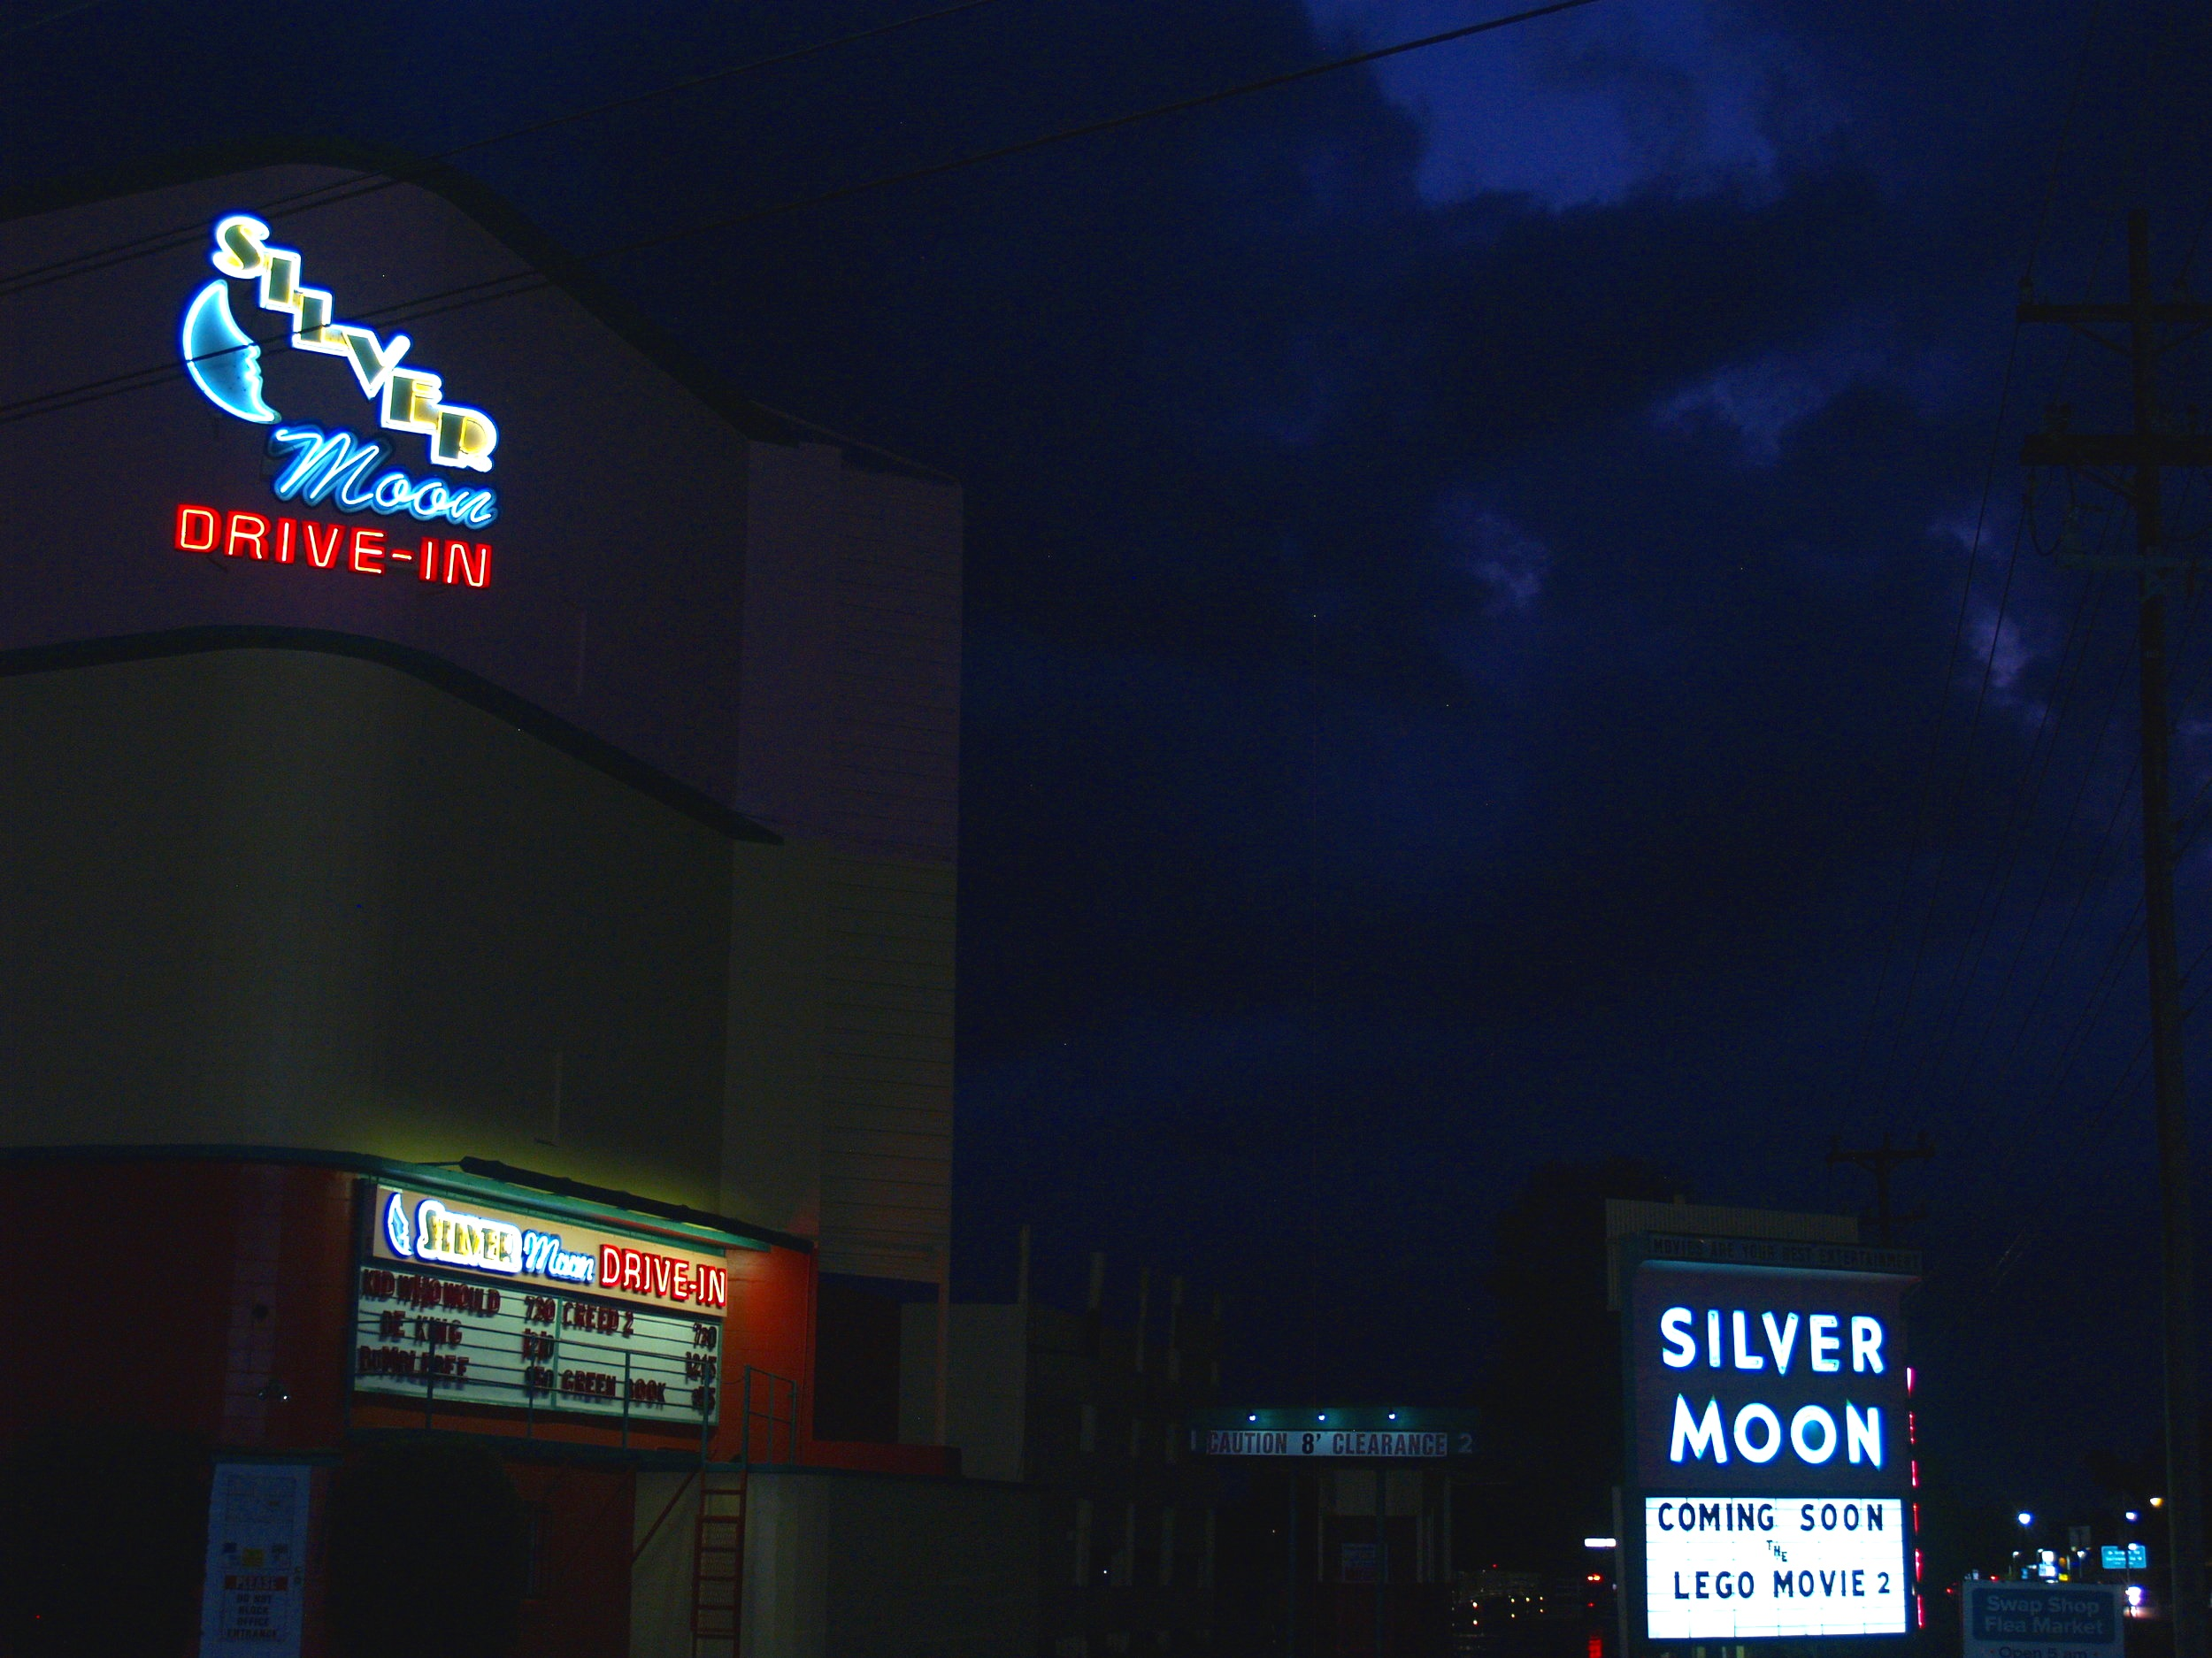 The Silver Moon Drive-In (Lakeland, FL)